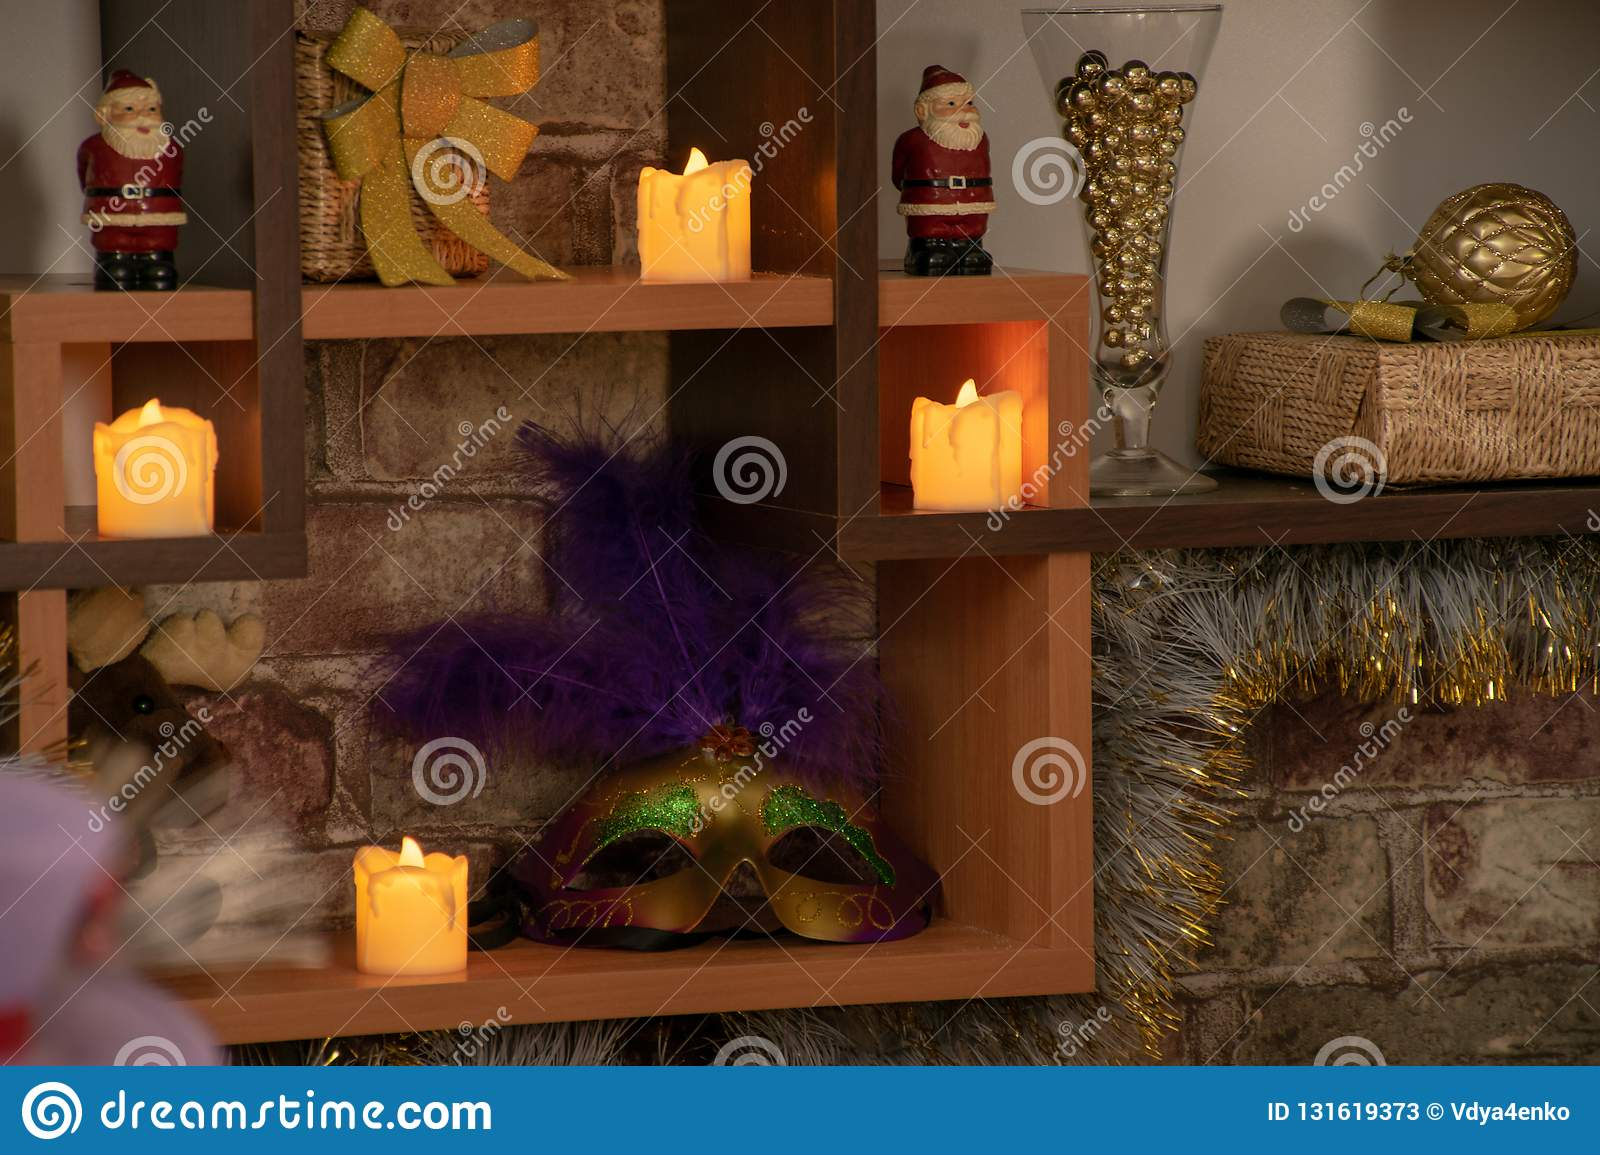 Tree Shelves With Christmas Decorations Stock Image - Image